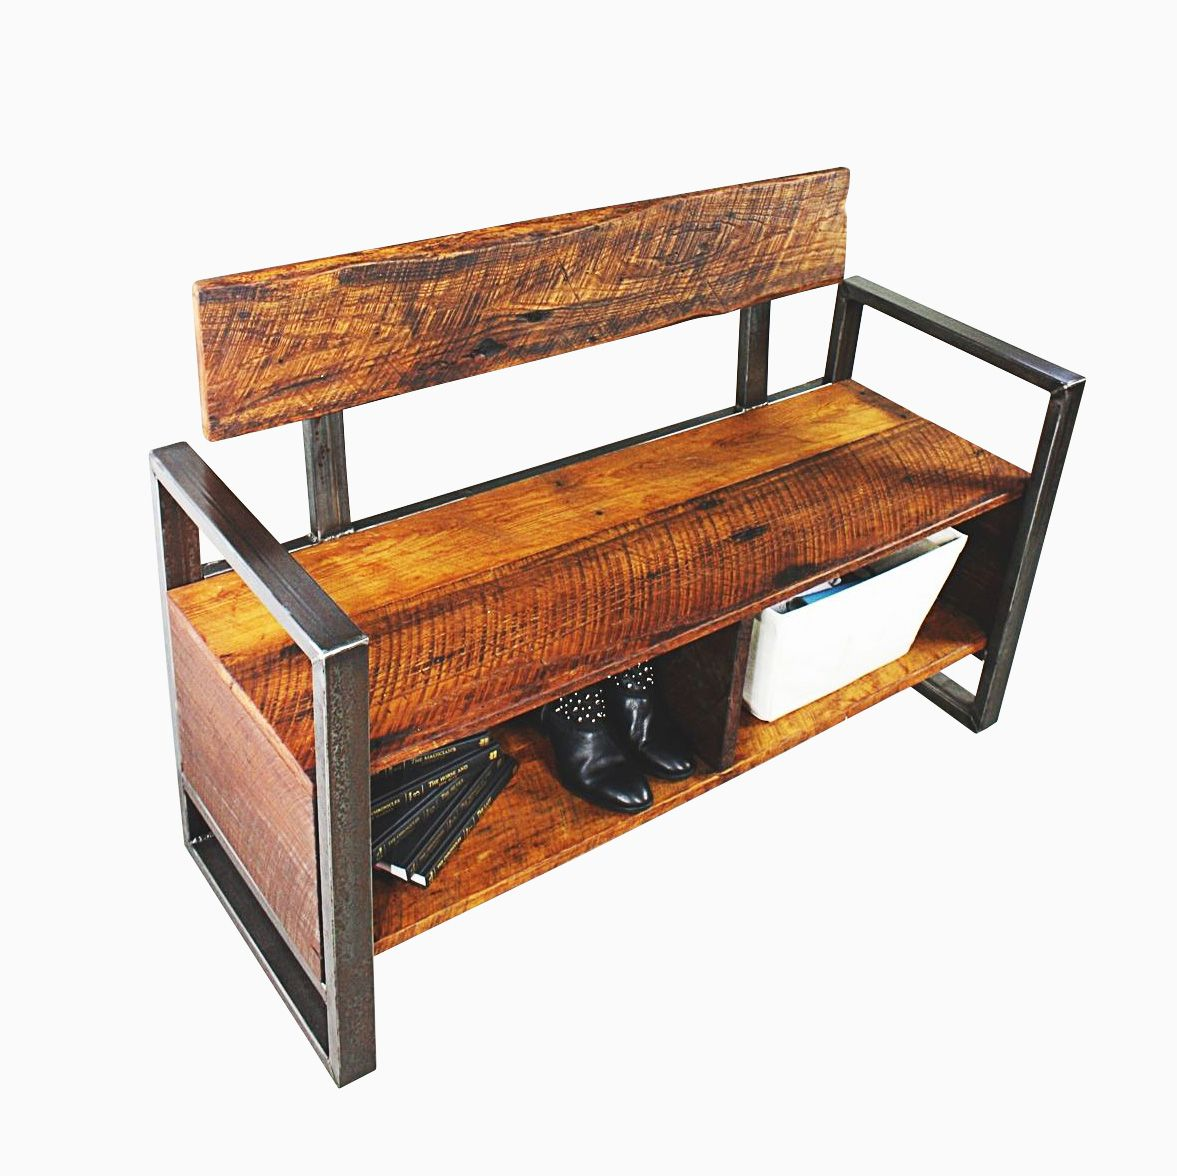 Buy Foyer Bench : Buy a custom unique reclaimed wood storage foyer bench